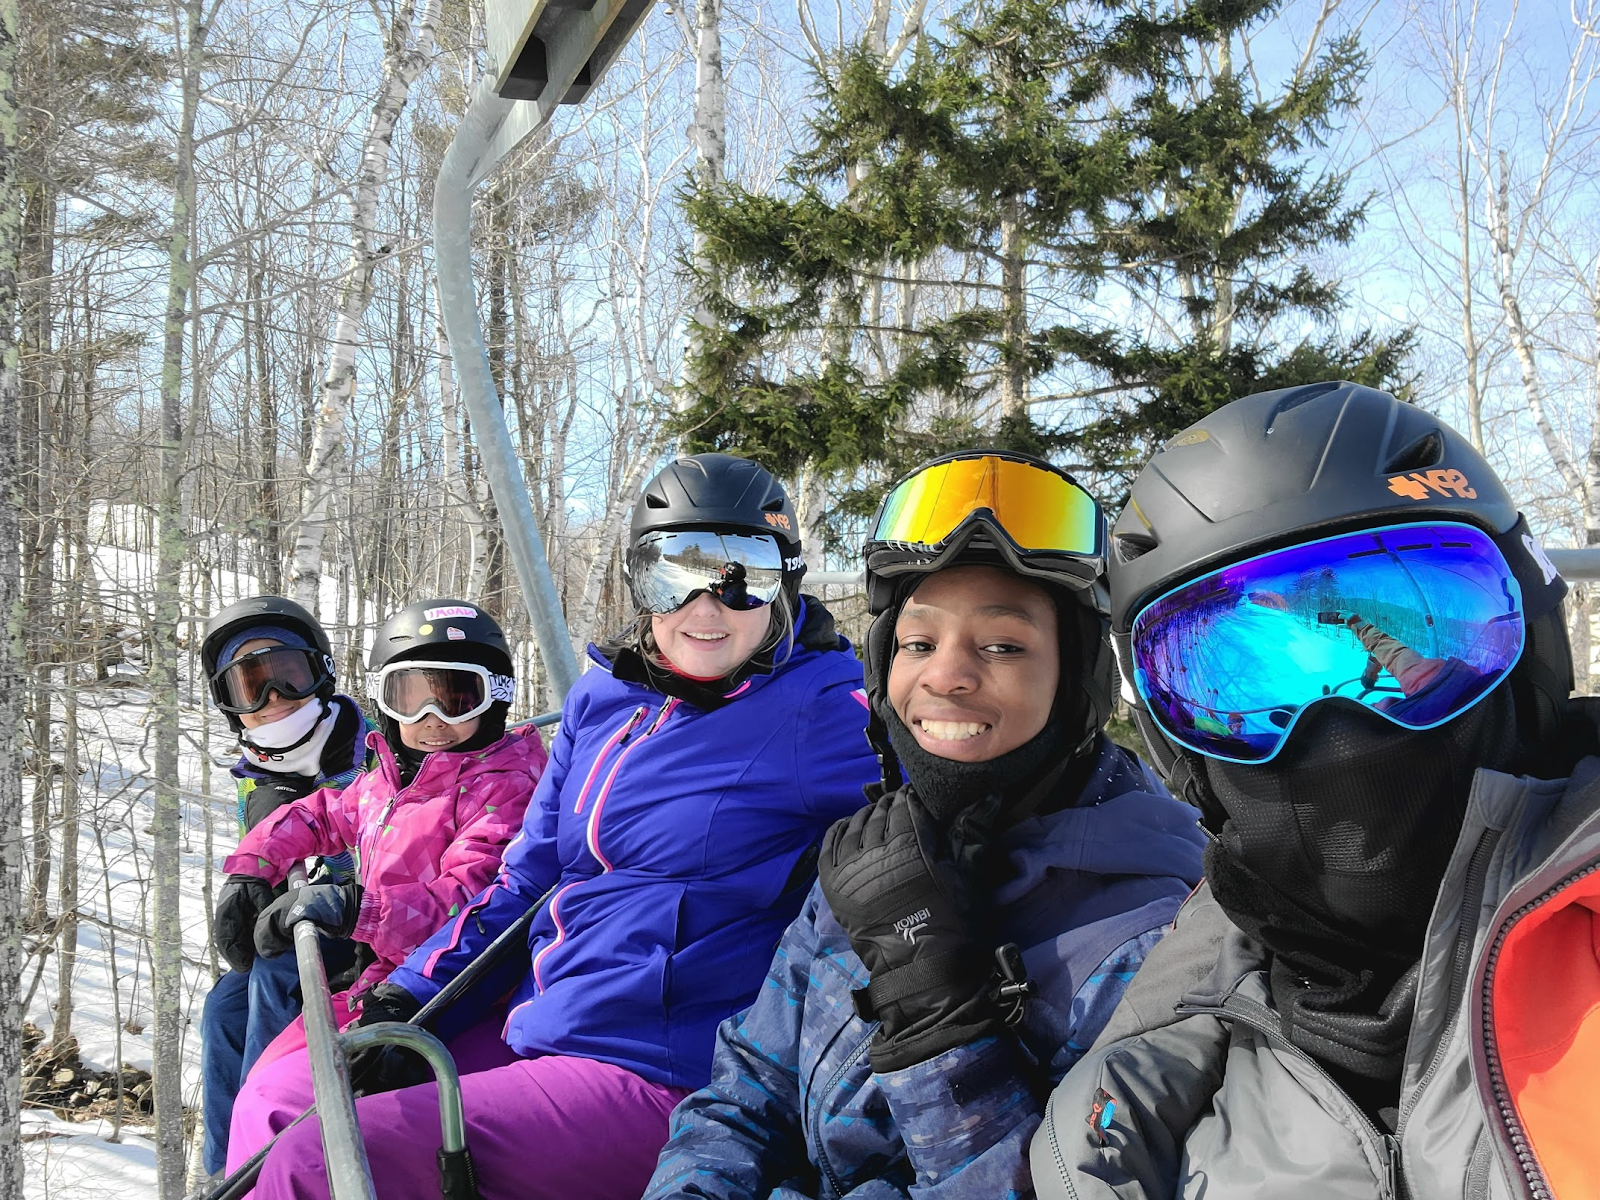 Photo of the author and his family at a ski resort in New Hampshire. Photo courtesy of Braxton Rocha.